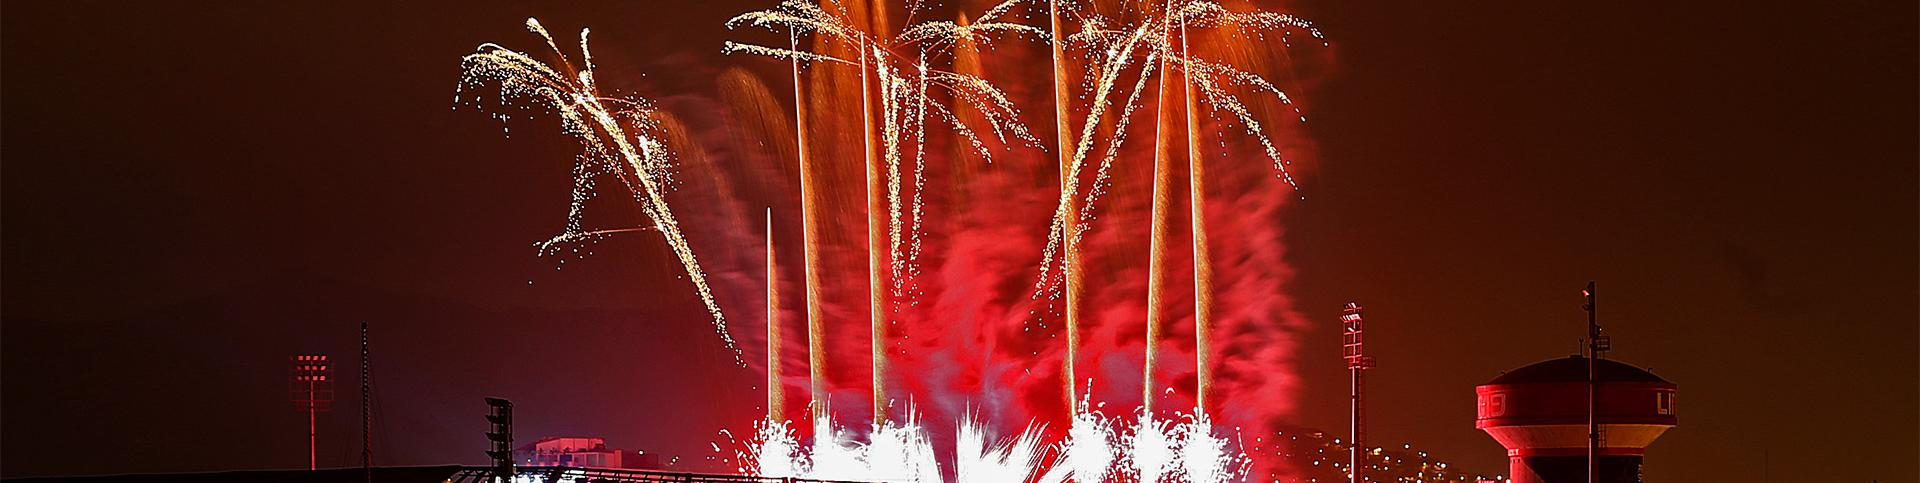 Fireworks on the Parapan American Games Closing Ceremony